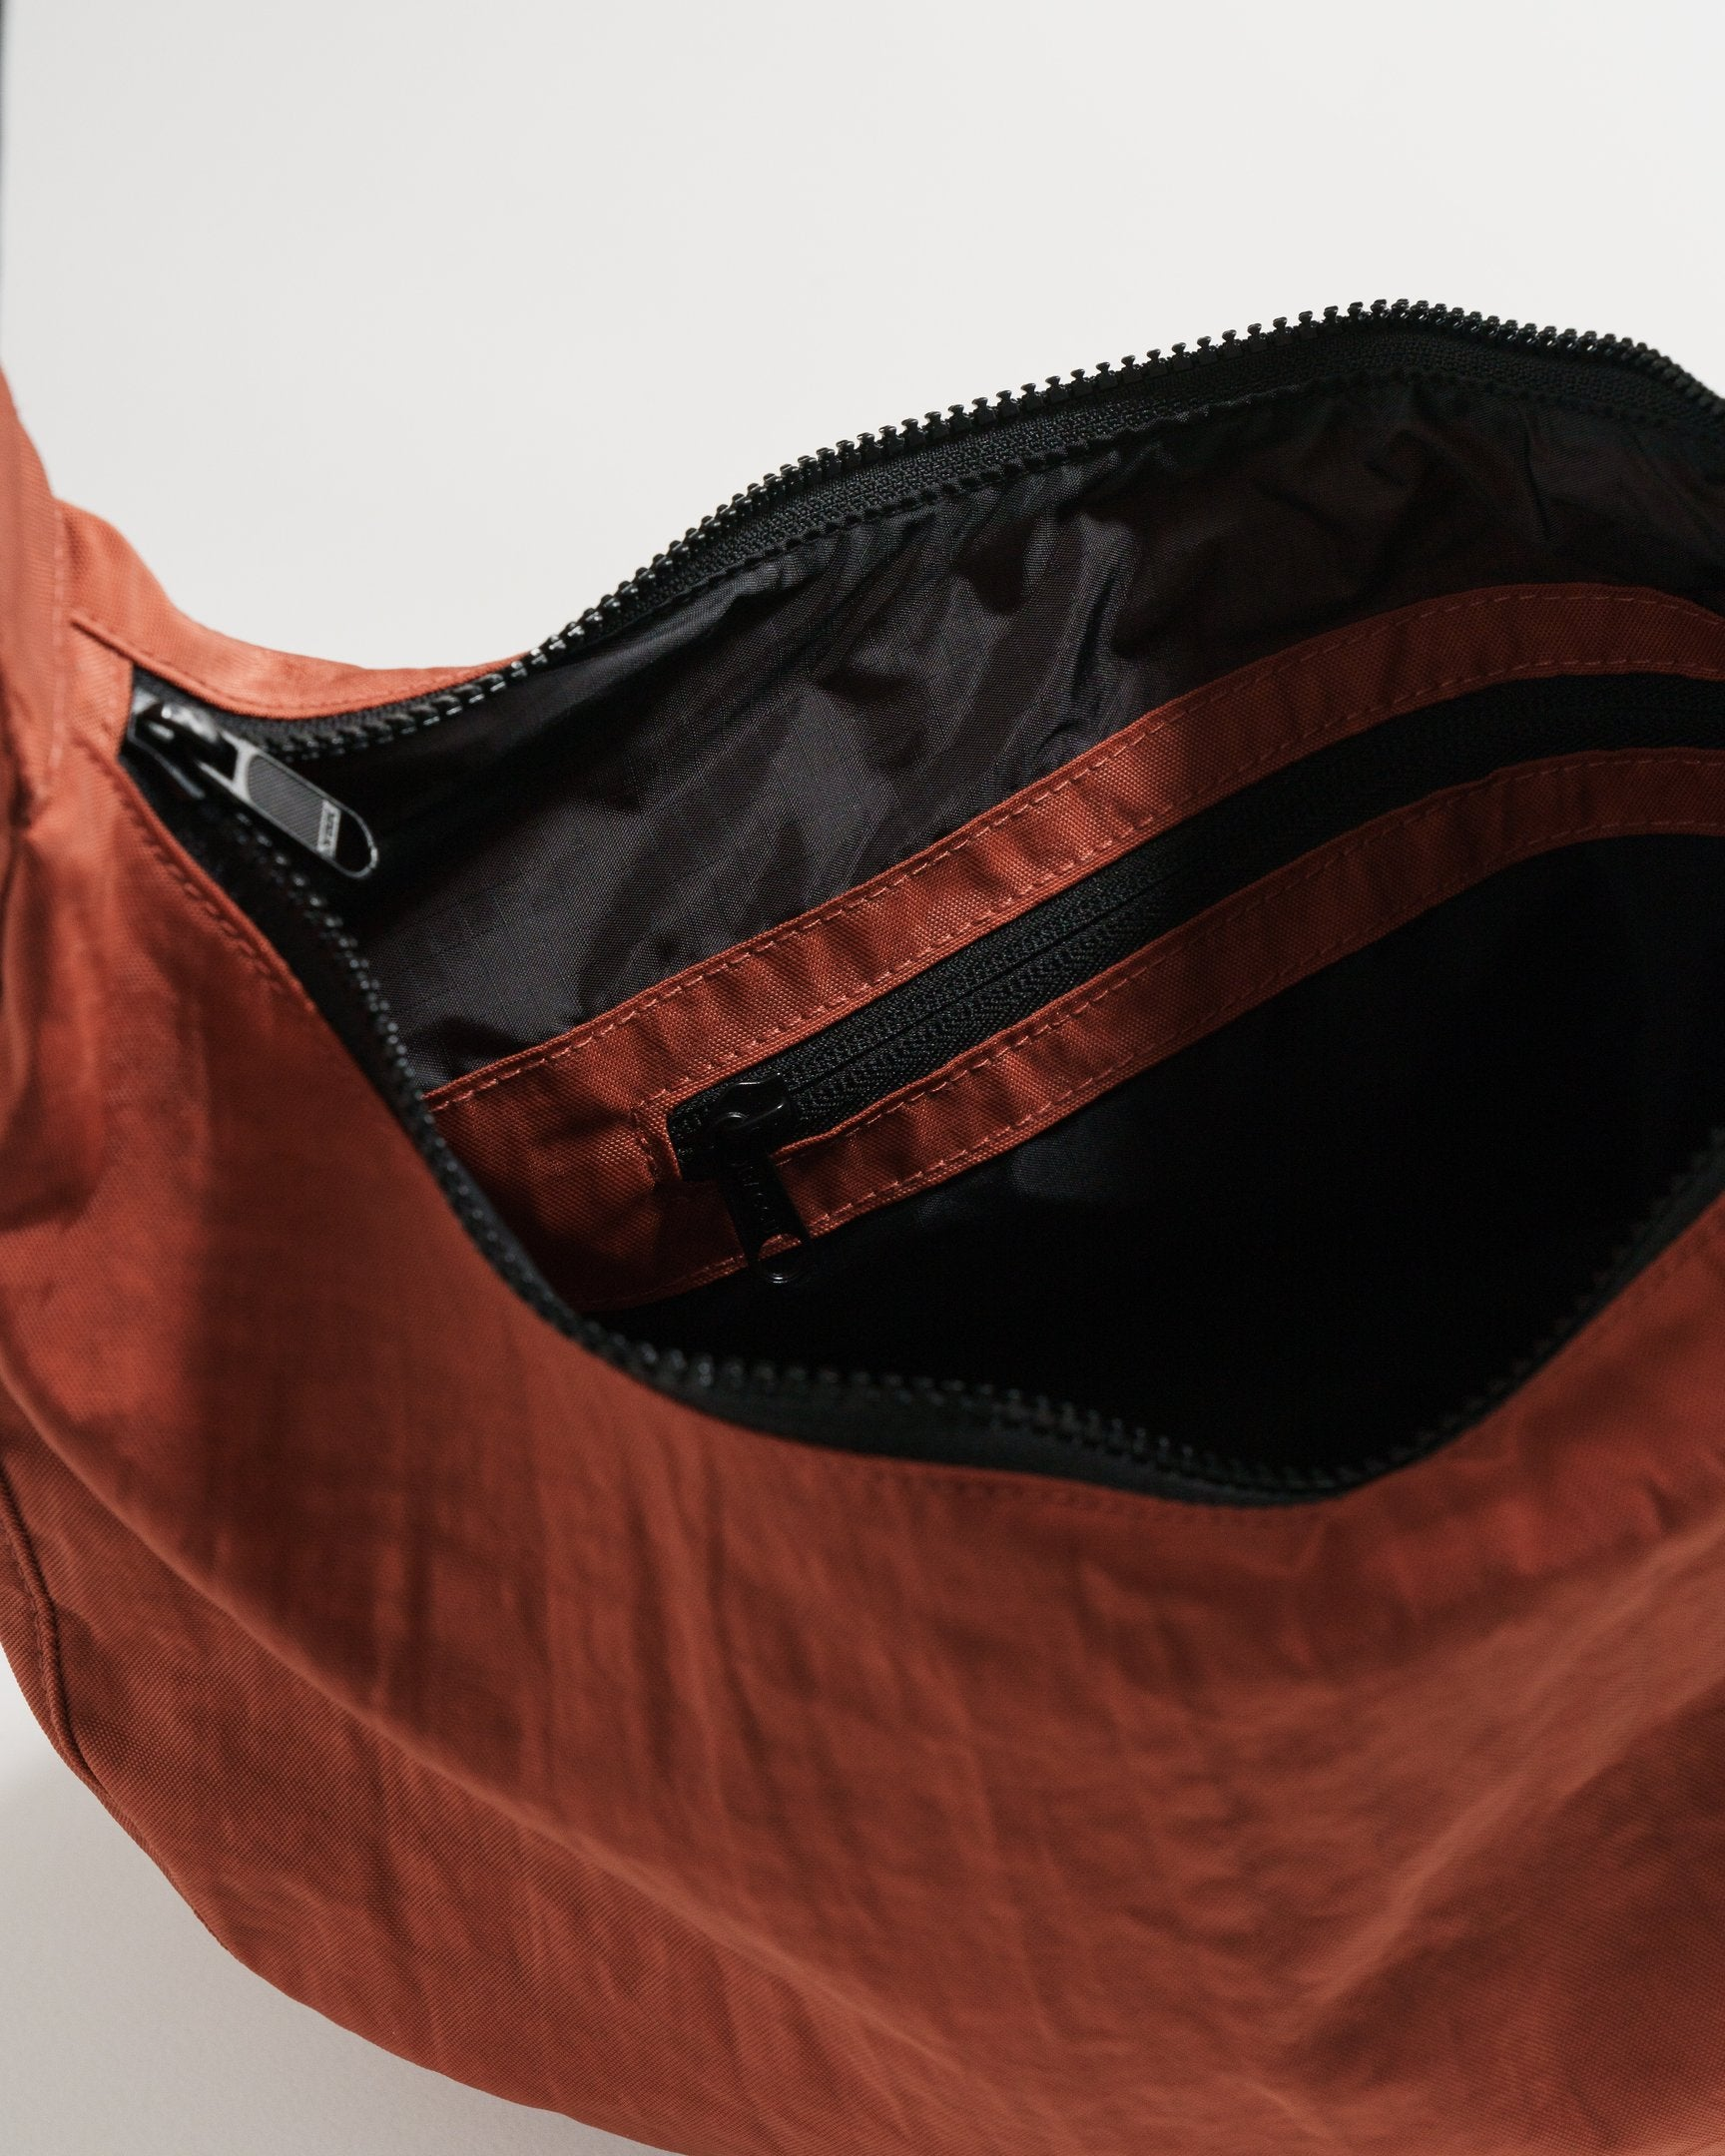 Medium Nylon Crescent Bag - Sienna